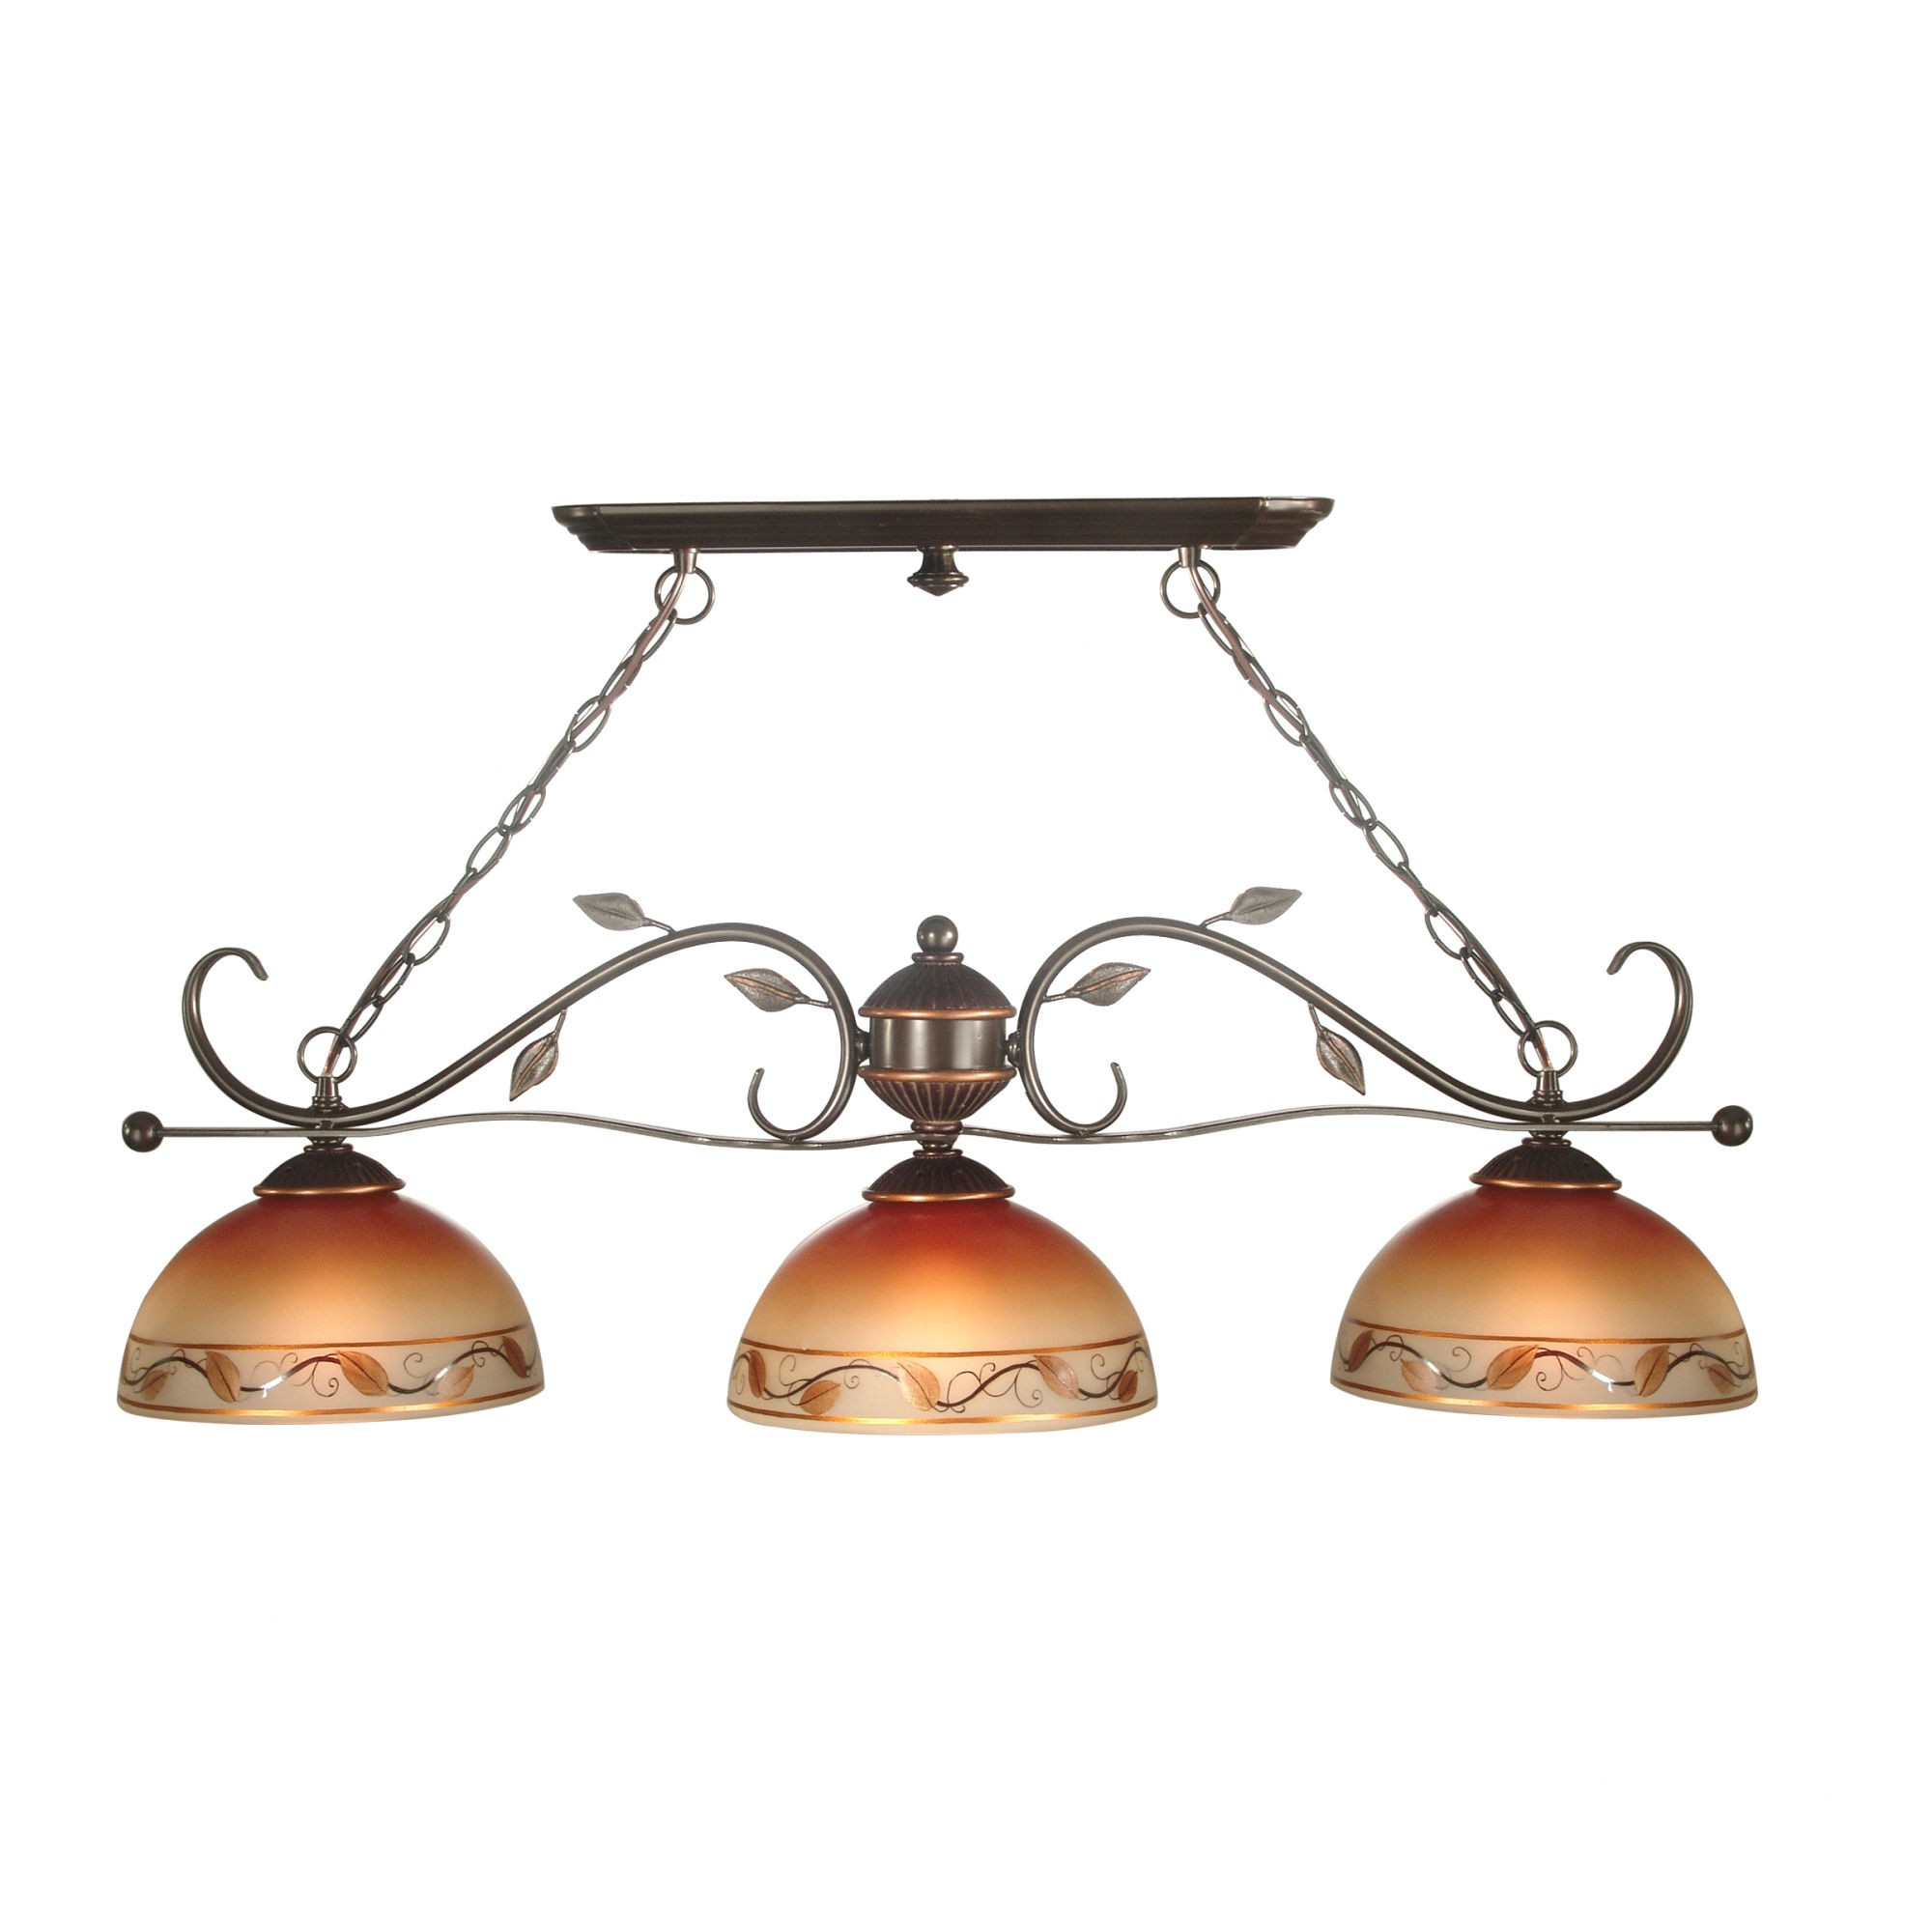 Illuminate Your Kitchens The Royal Way With Vintage Kitchen Ceiling - Retro kitchen ceiling light fixtures